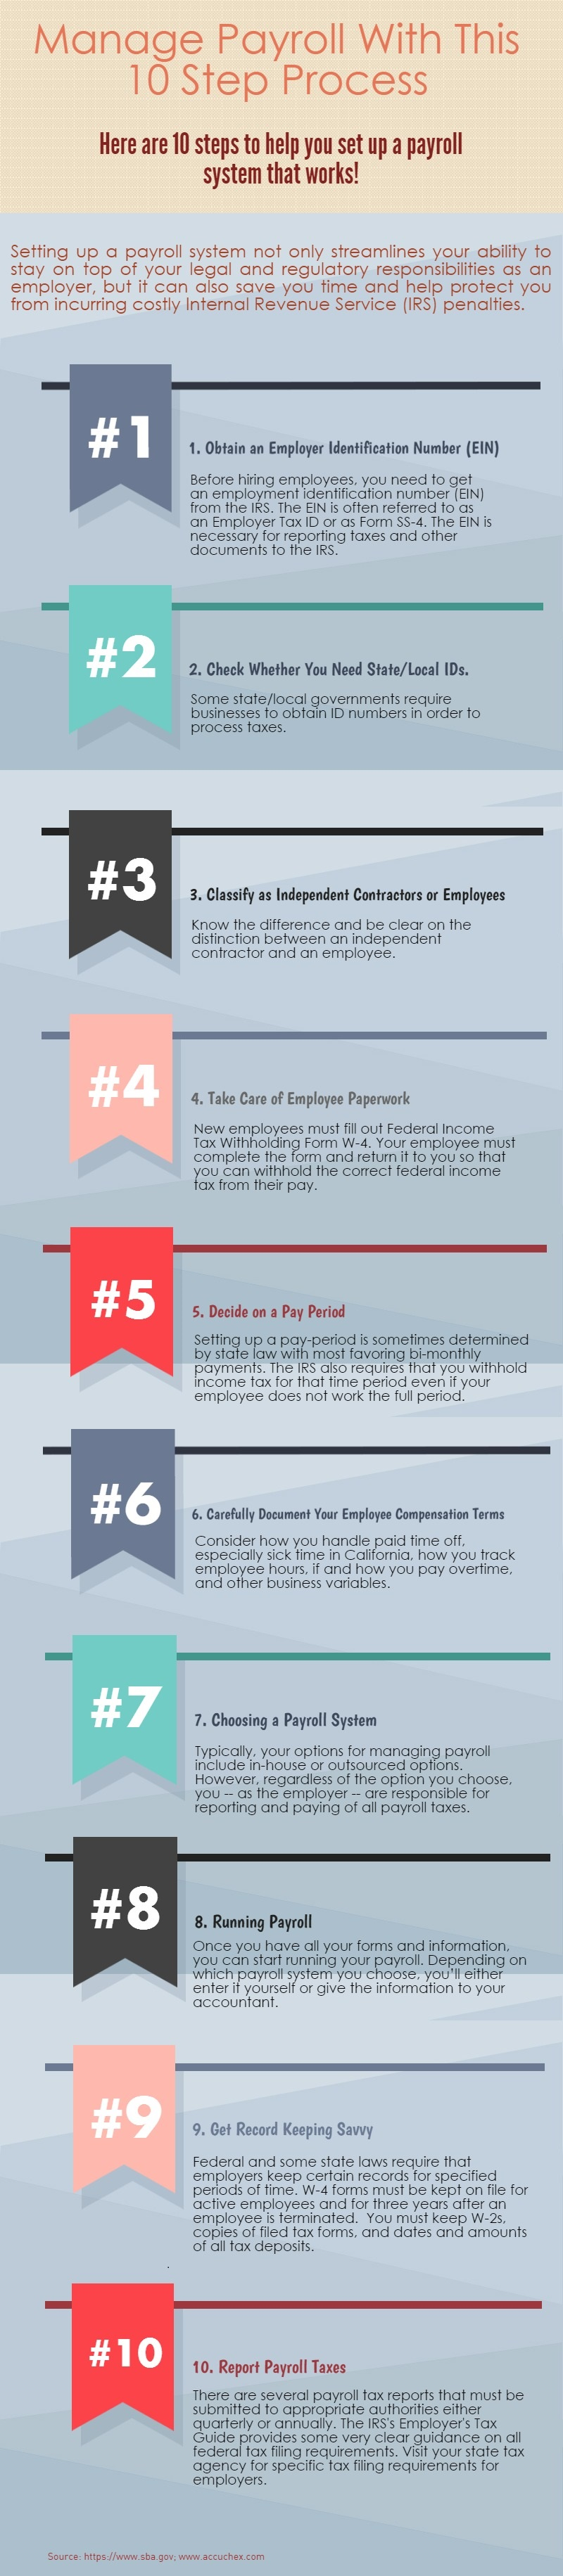 10-steps-to-a-better-managed-payroll-process-infographic